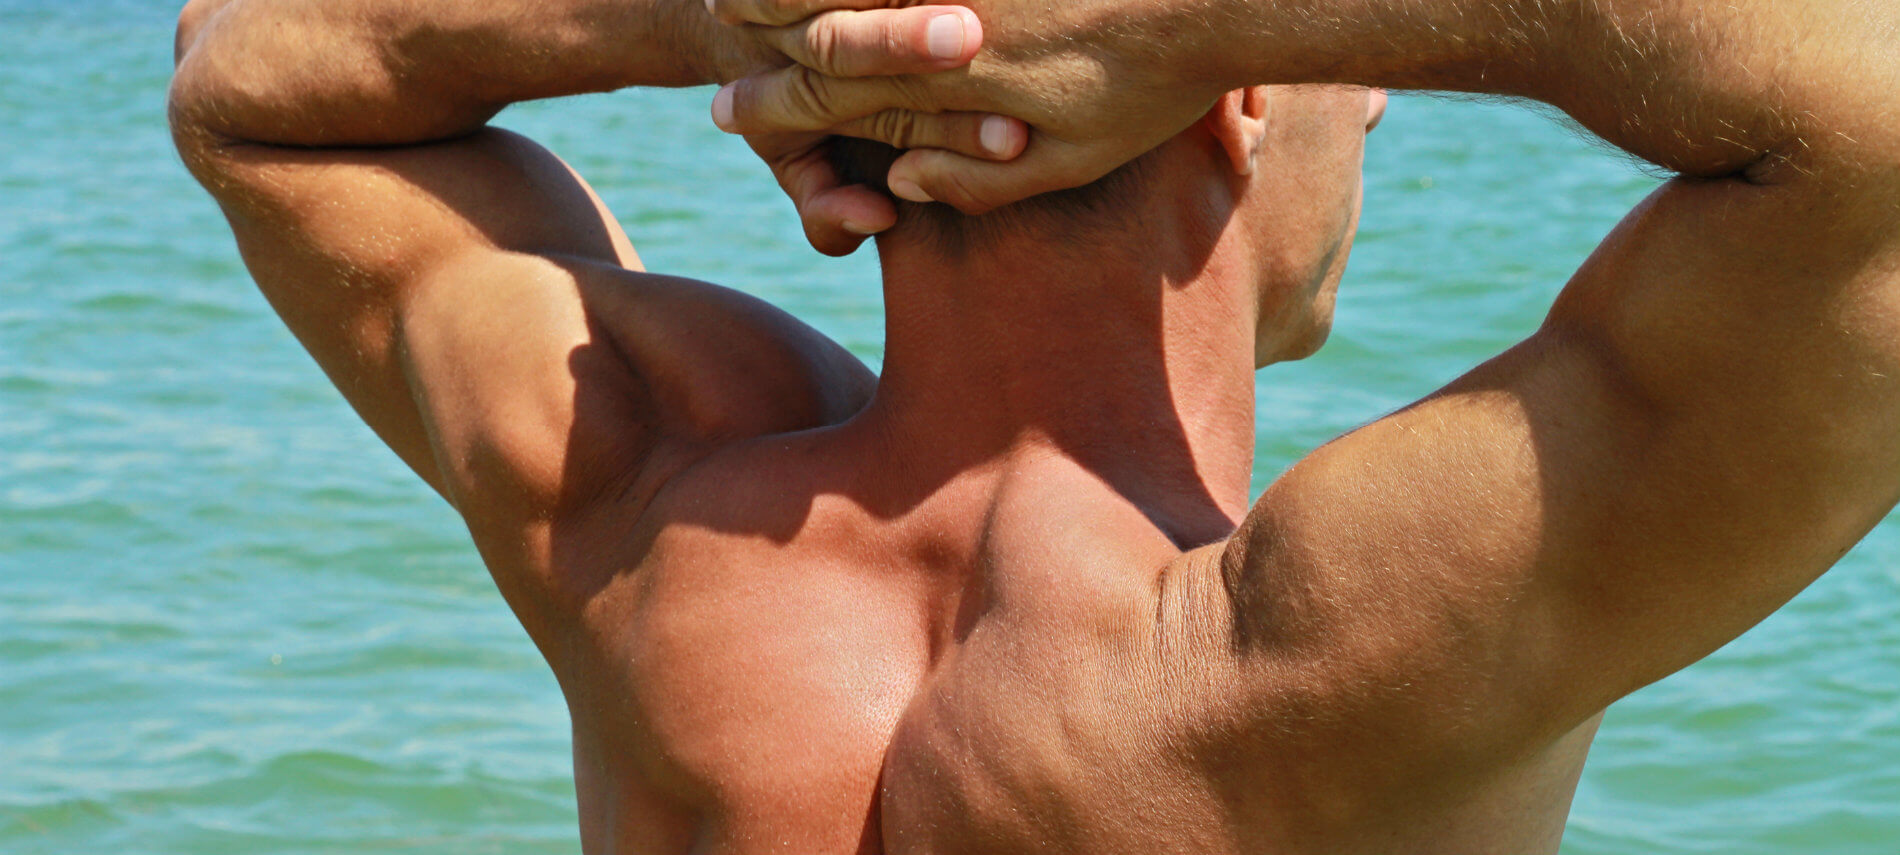 The sculpted muscular back of a shirtless man with his arms over his head lending definition to his lines.